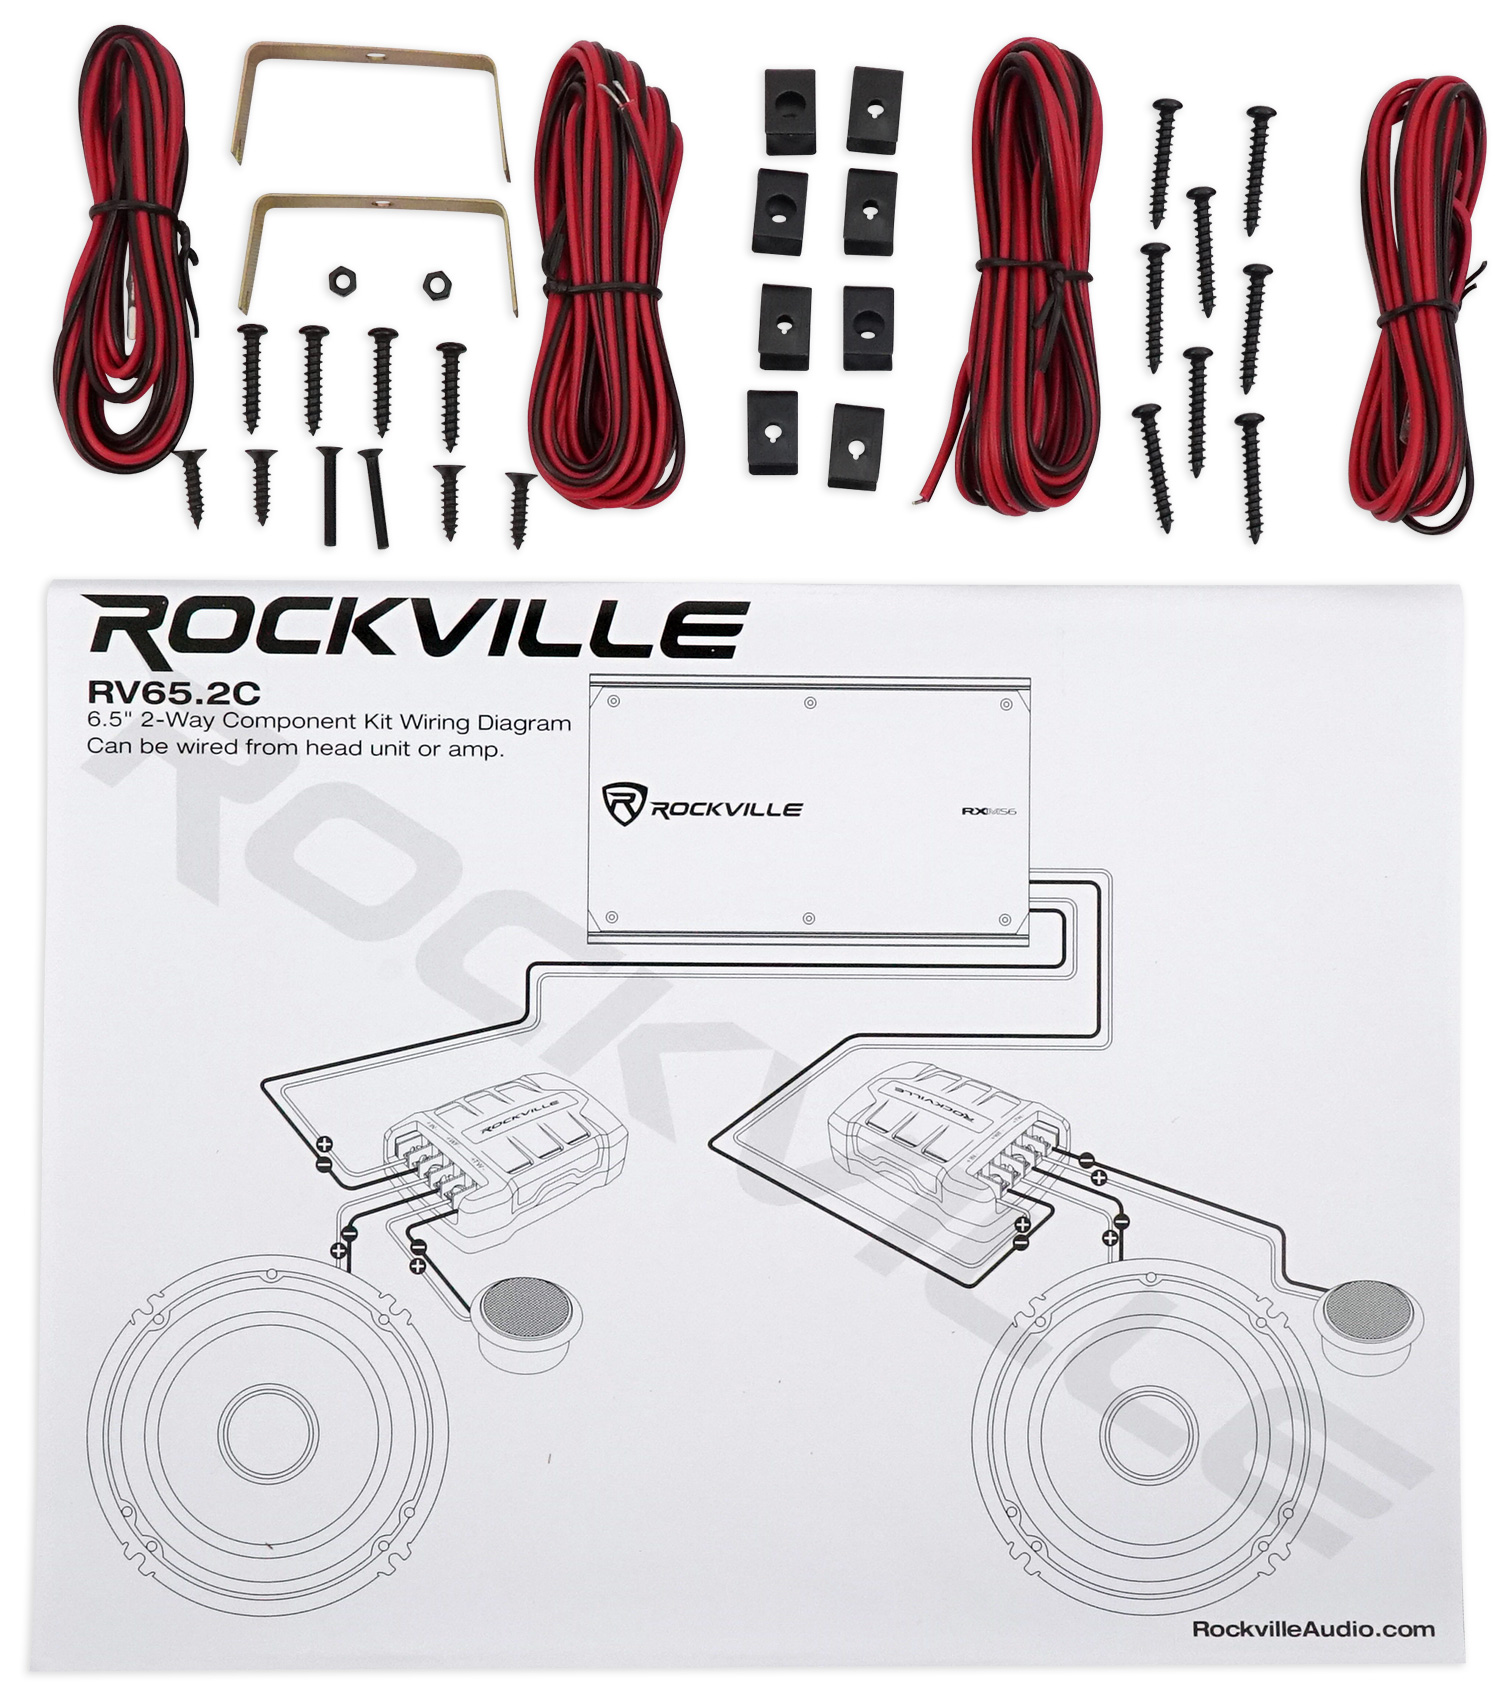 hight resolution of 2 pairs rockville rv65 2c 6 5 component car speakers 4 channel